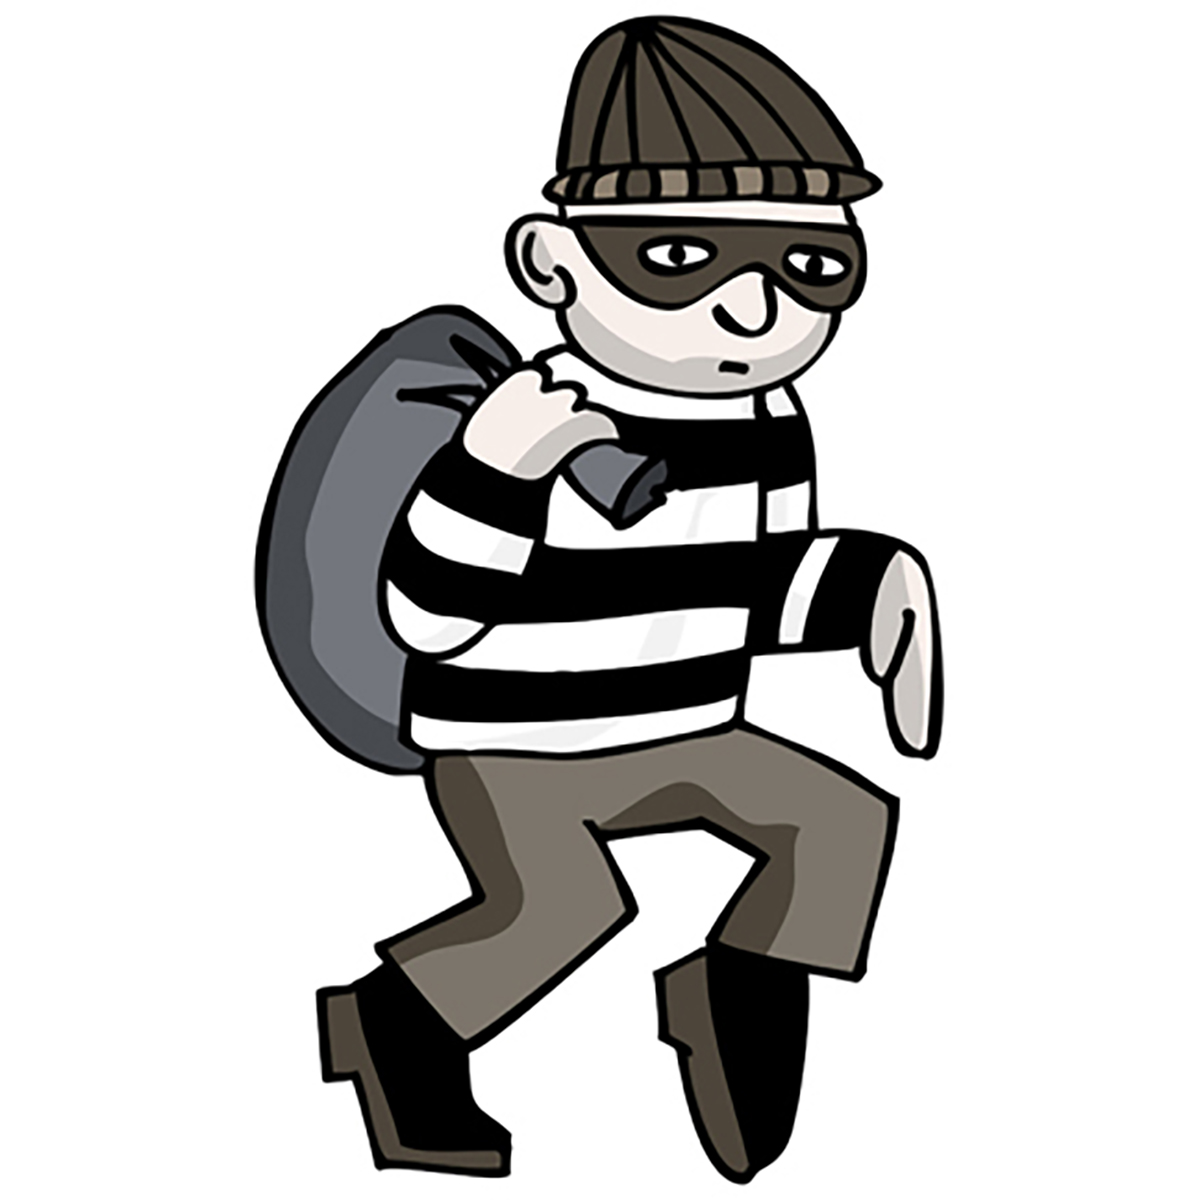 Bank robber clipart free svg Robber arrives too early at bank, held svg